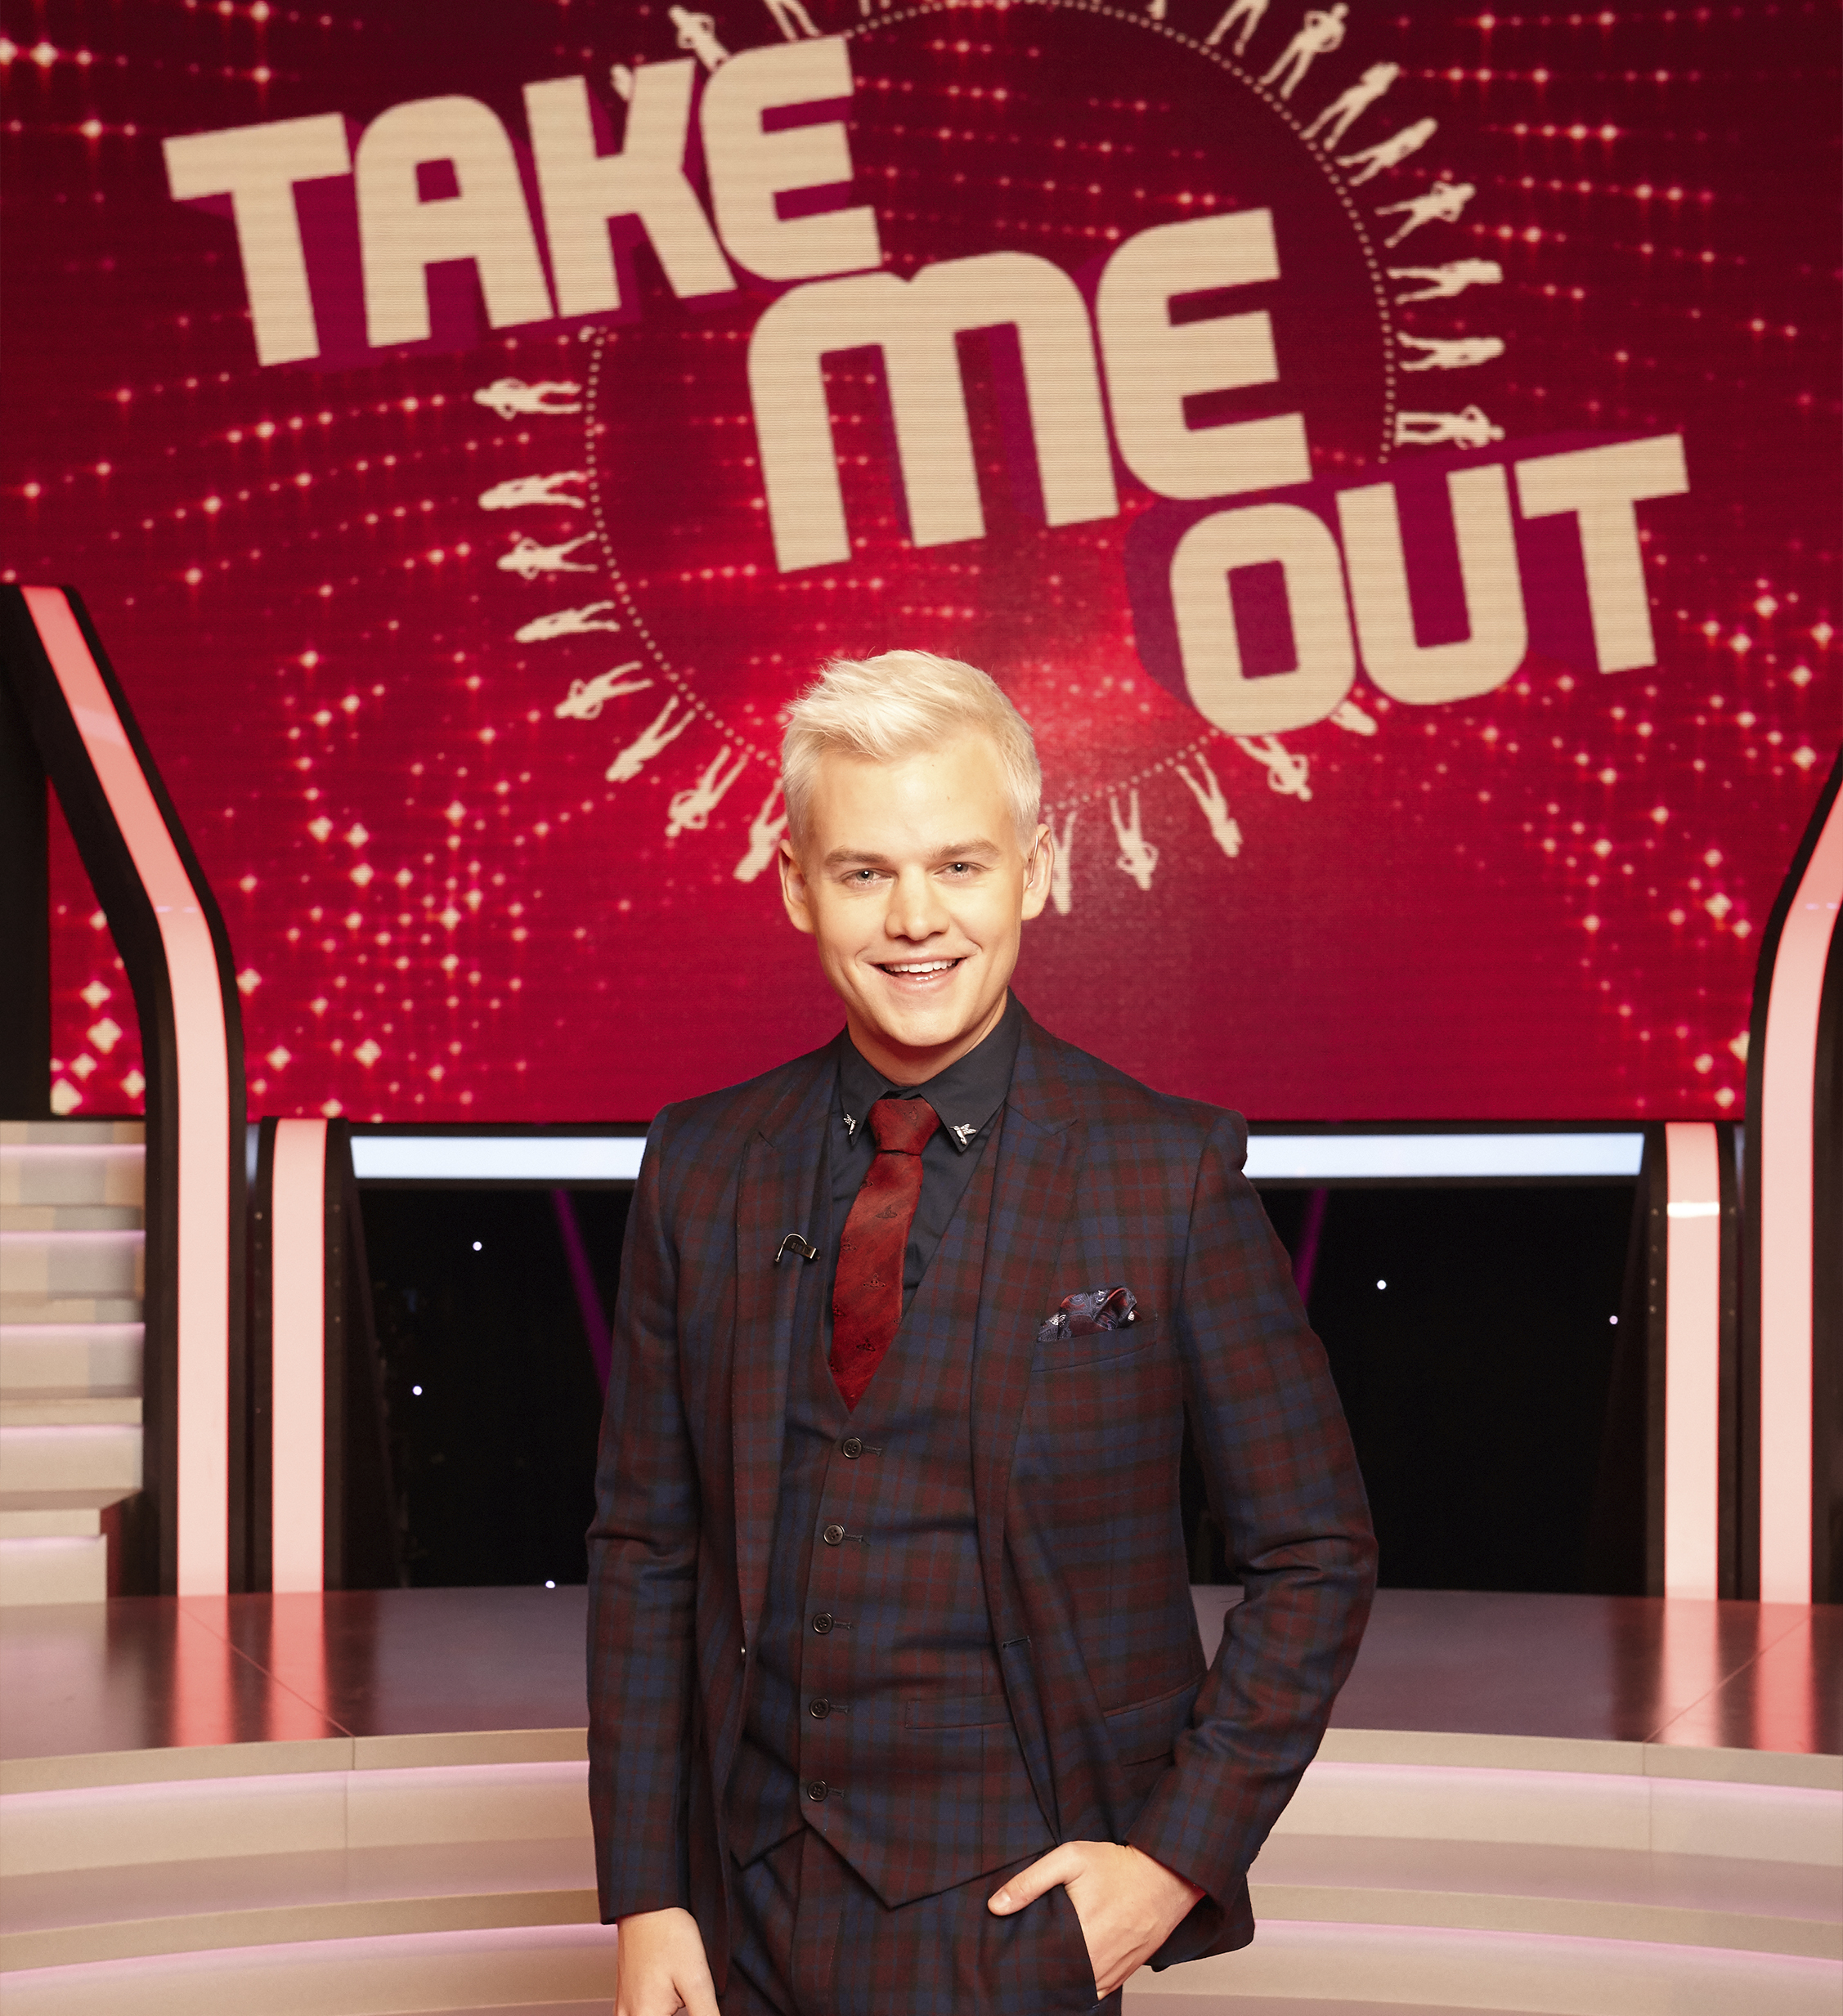 TAKE ME OUT   Channel 7  First impressions really do count in this provocative, visually spectacular and electrifyingly funny dating show. Every week, 30 ladies with attitude are introduced to several bachelors one by one. Each woman has a switch that controls her fate for a date: if she thinks it's a match, she keeps her light on; if her attraction has been short-circuited, then it's lights out and she waits for the next potential Mr. Right.